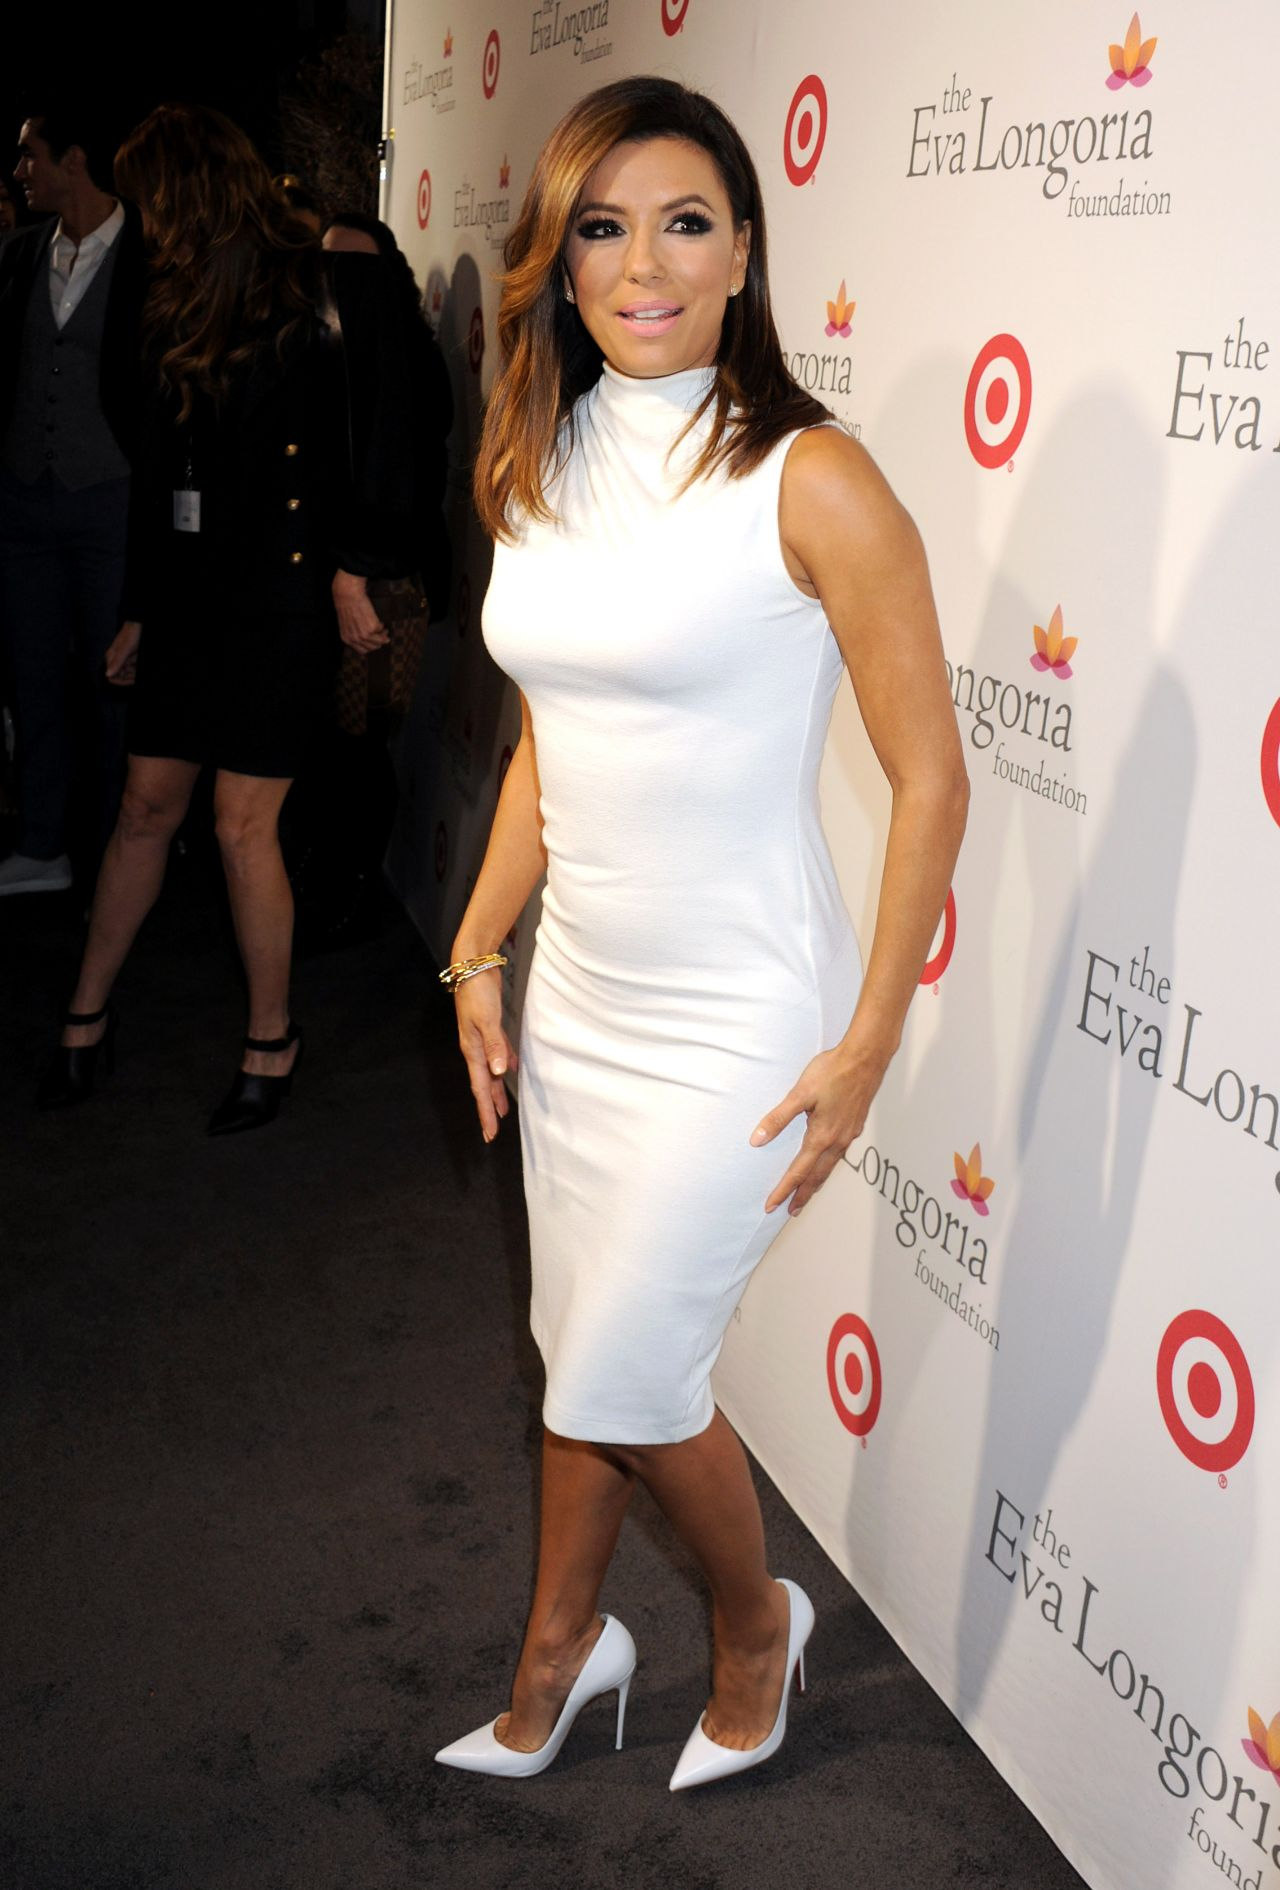 Eva Longoria 2015 Eva Longoria Foundation Dinner In Hollywood